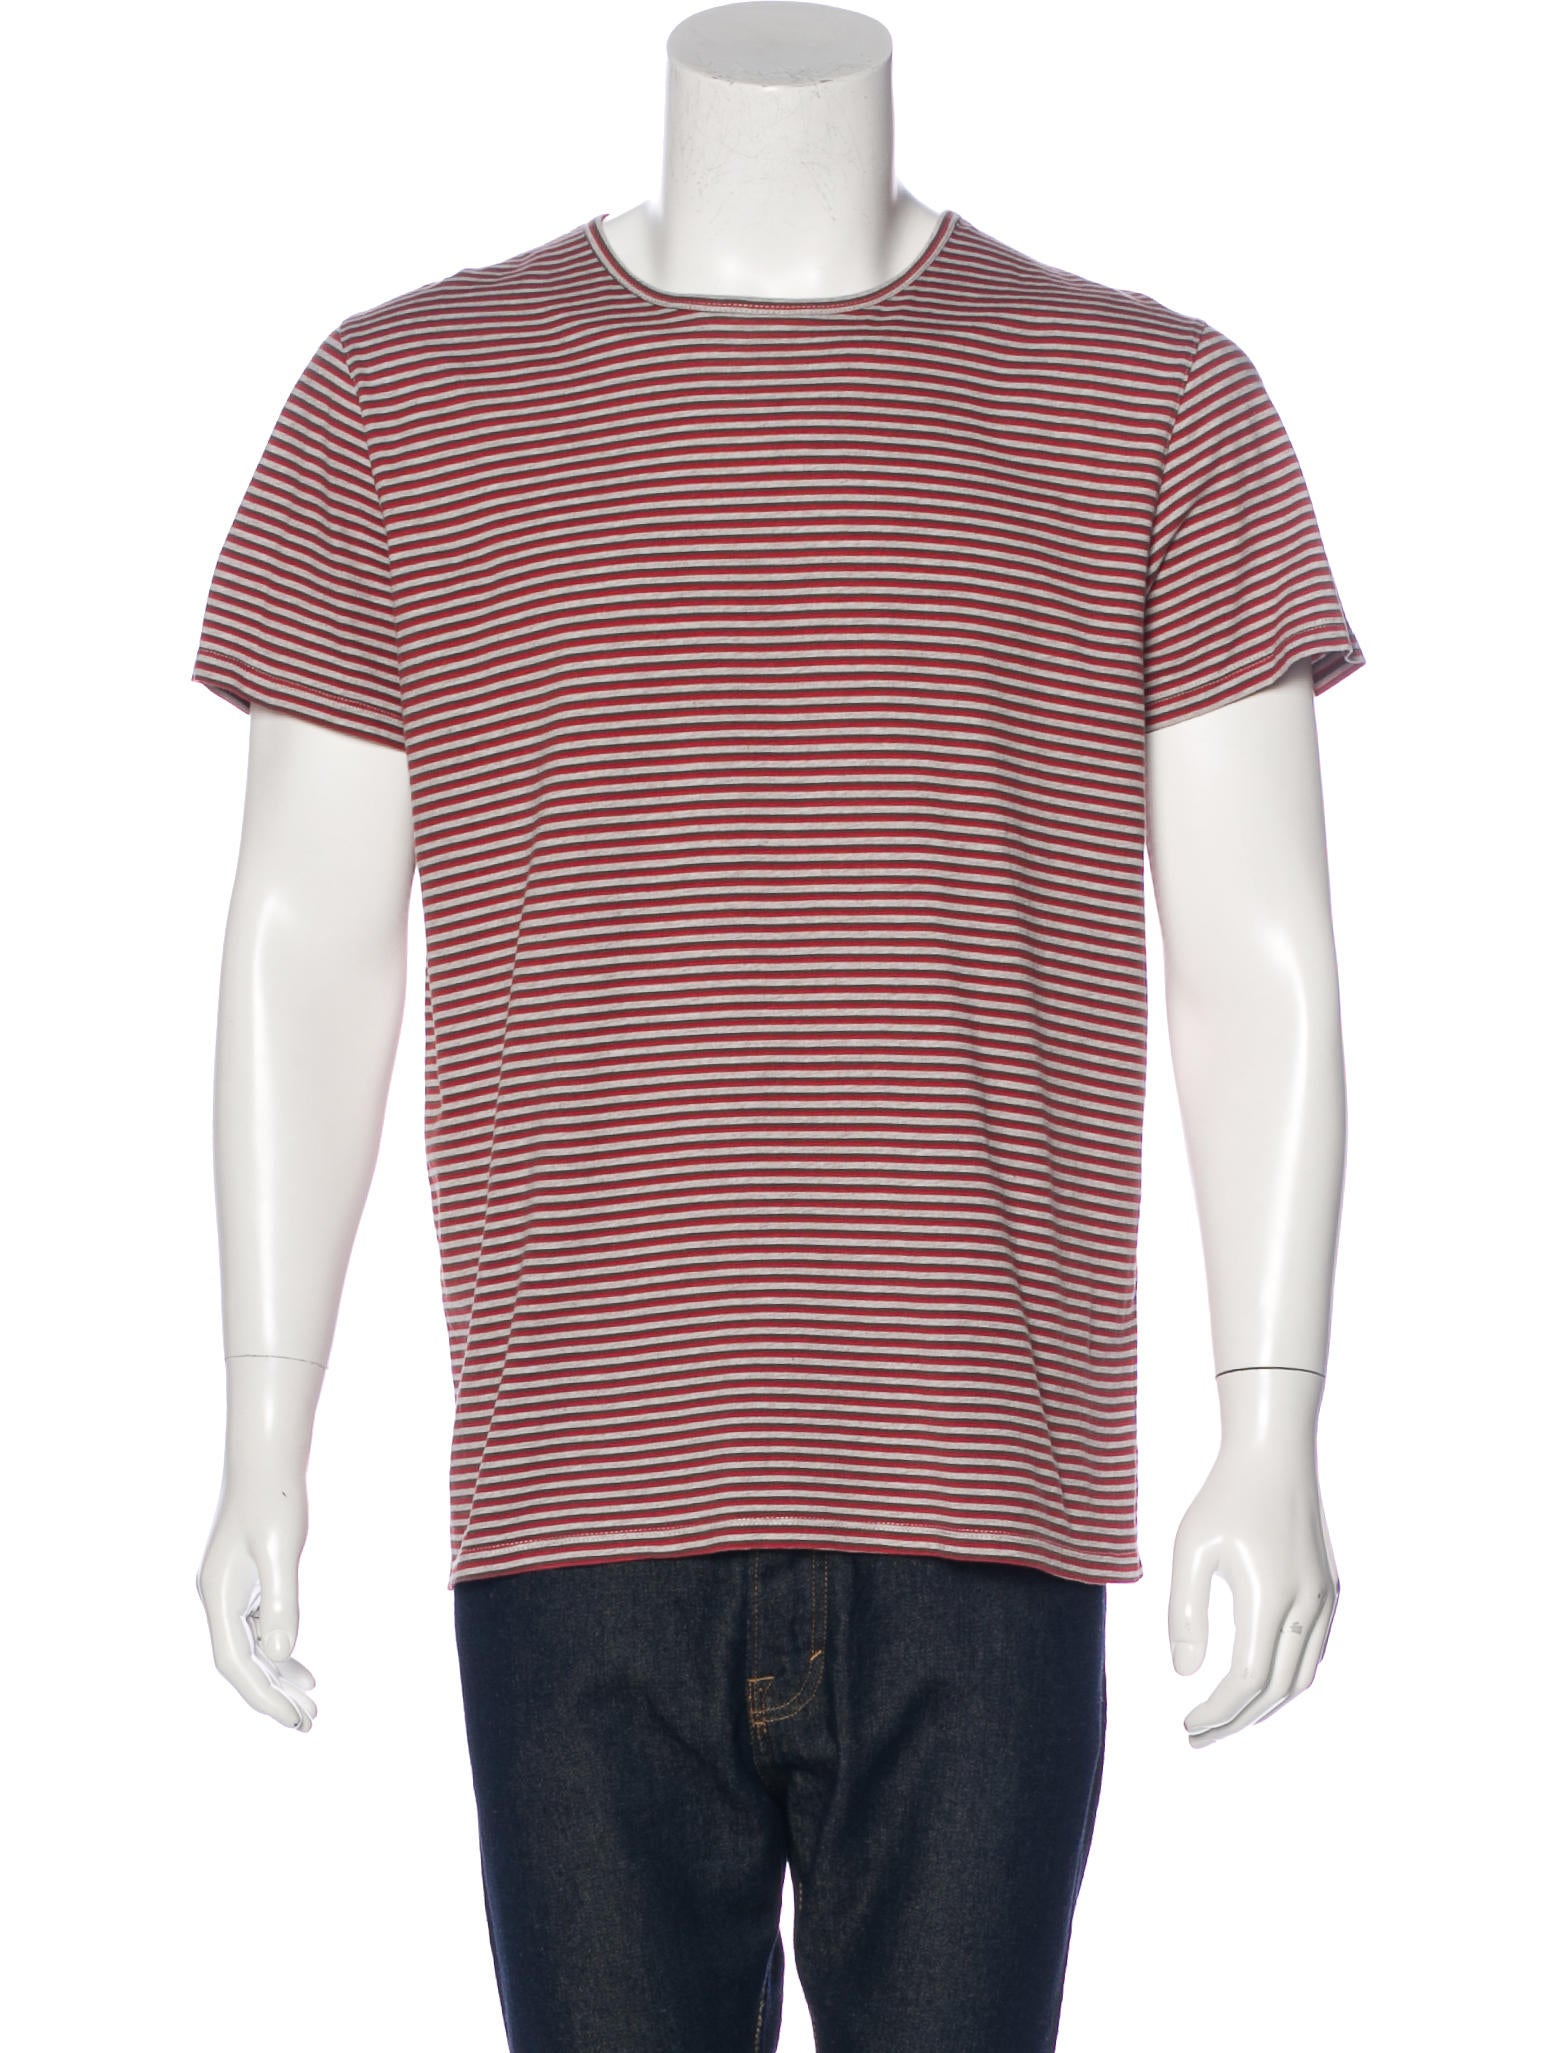 A p c striped scoop neck t shirt clothing wa325705 for Scoop neck t shirt